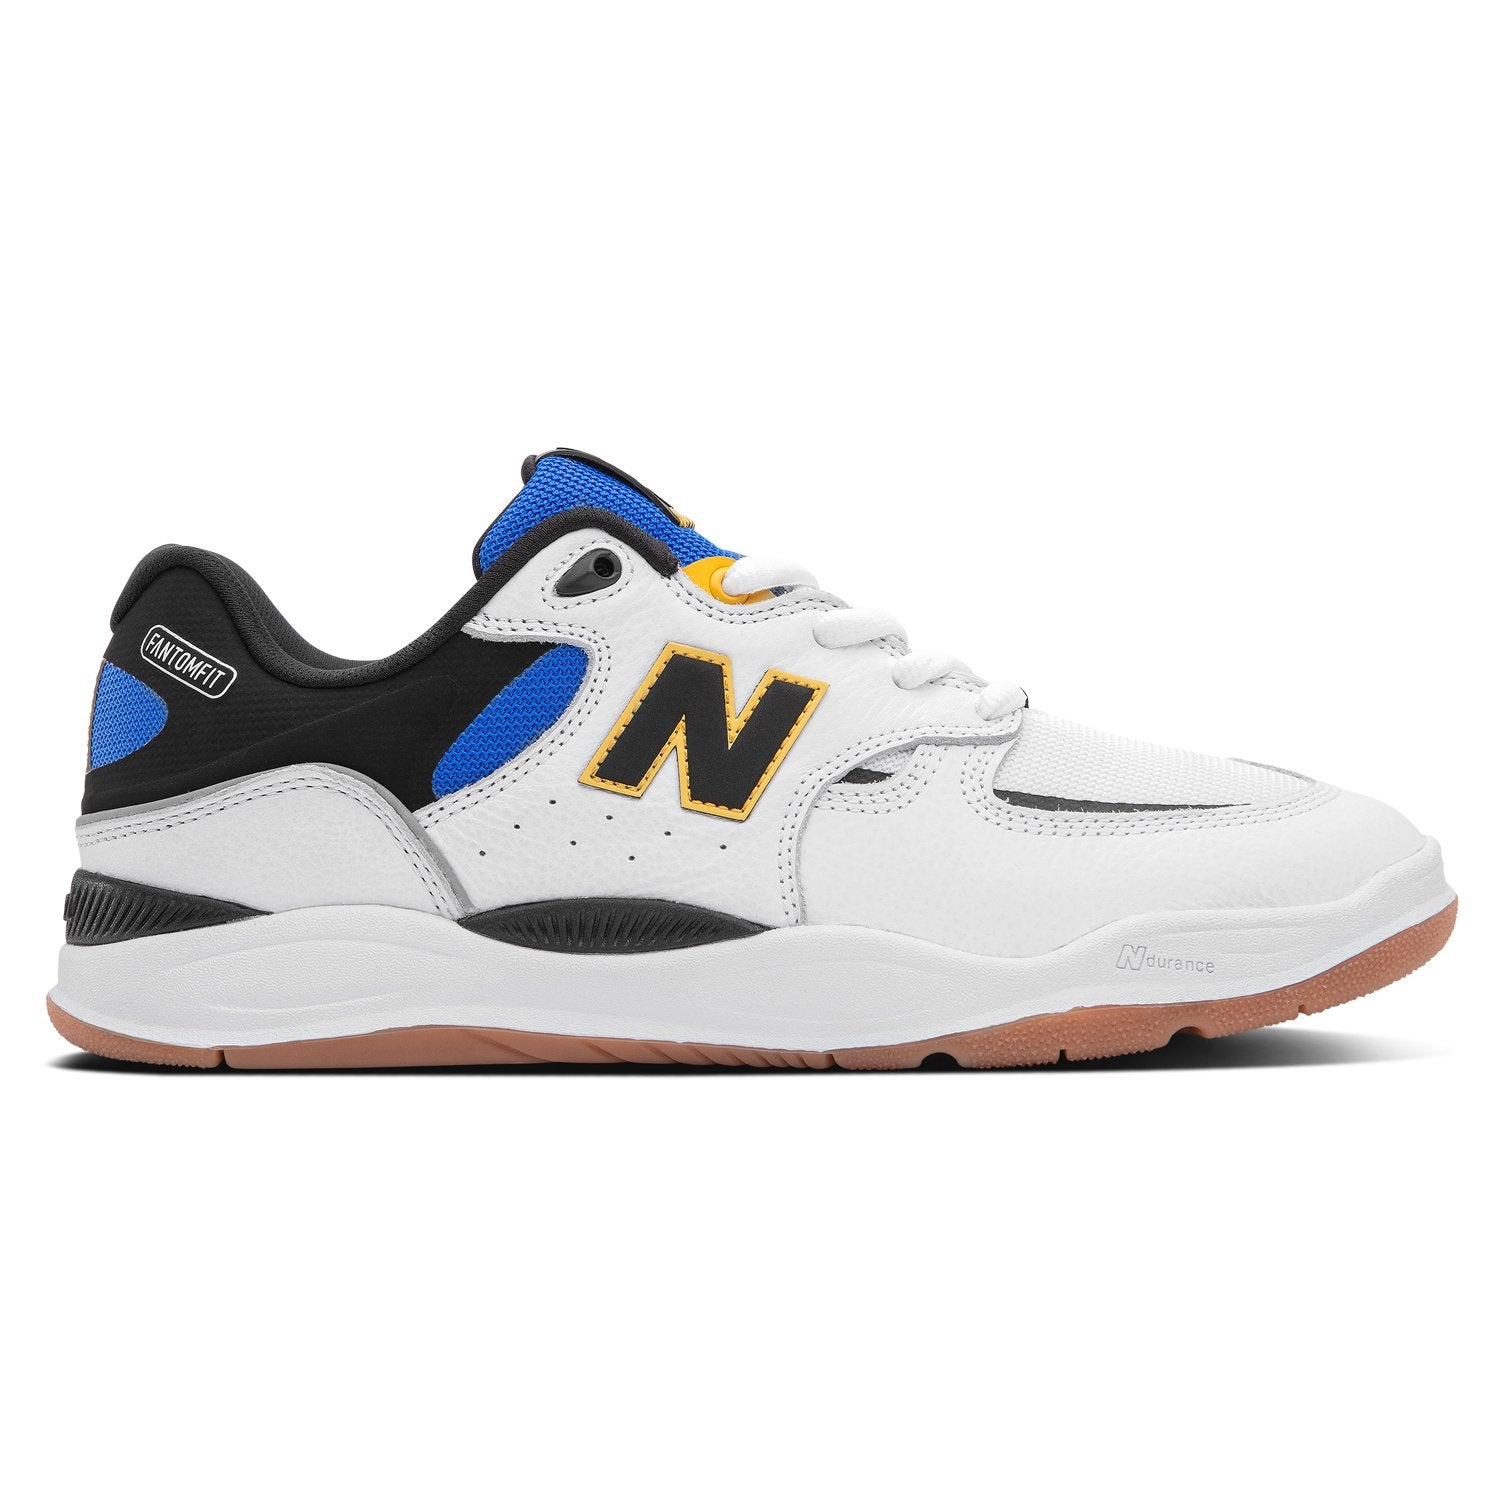 New Balance Numeric Tiago NM1010WT White